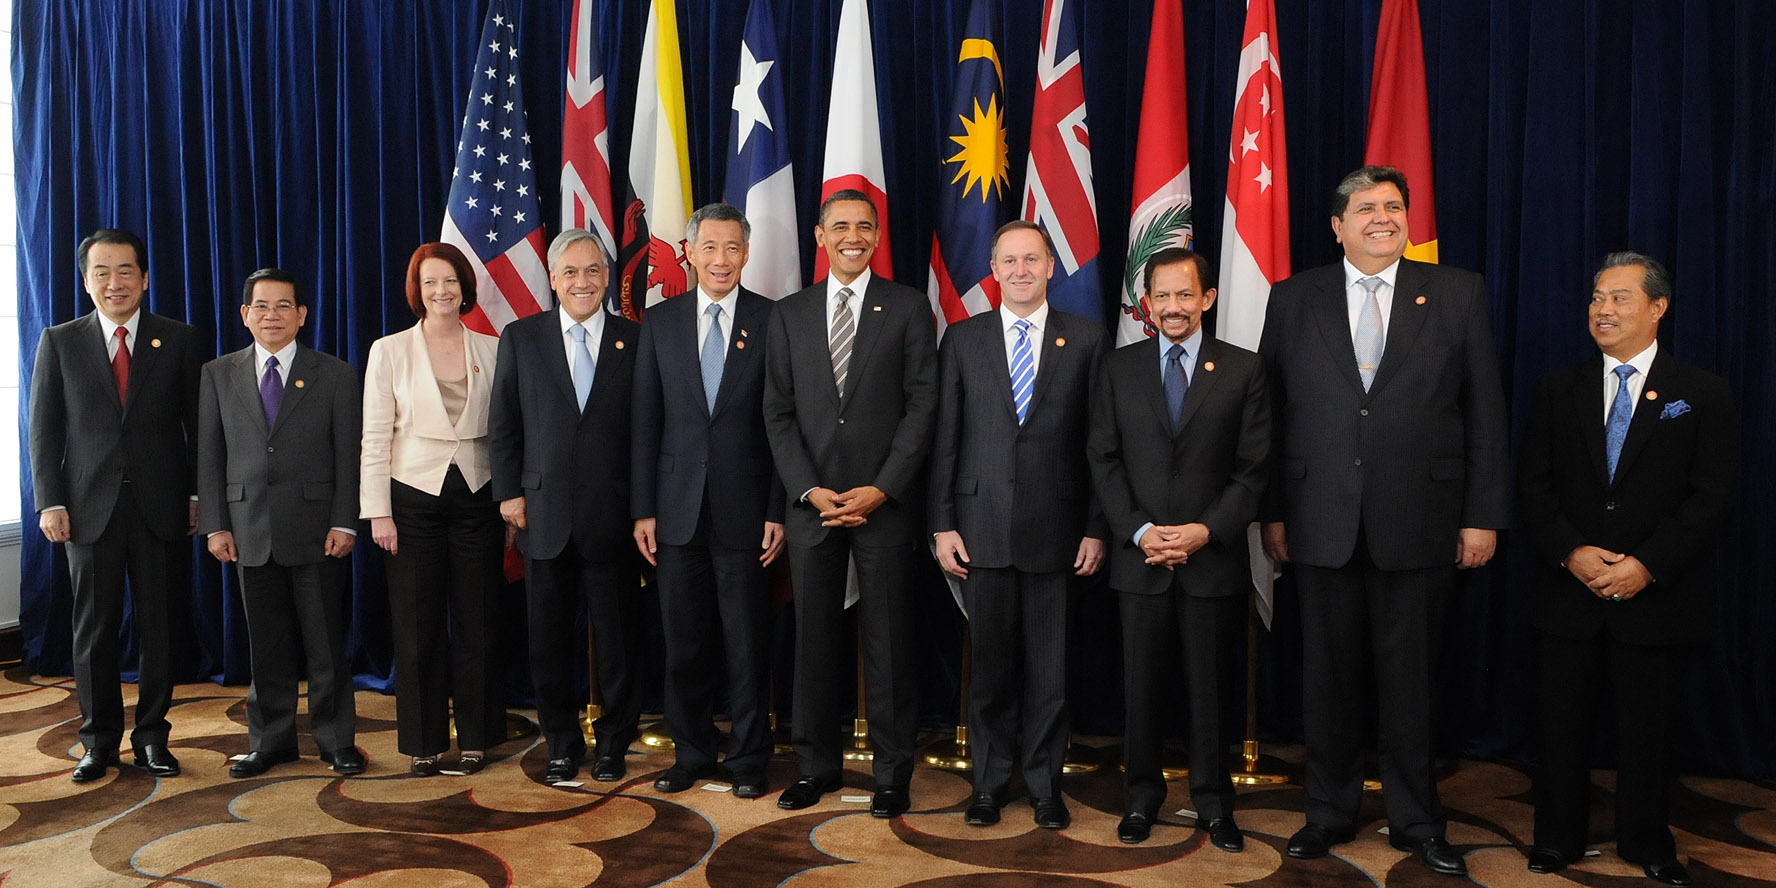 Head of States of the TPP in 2010